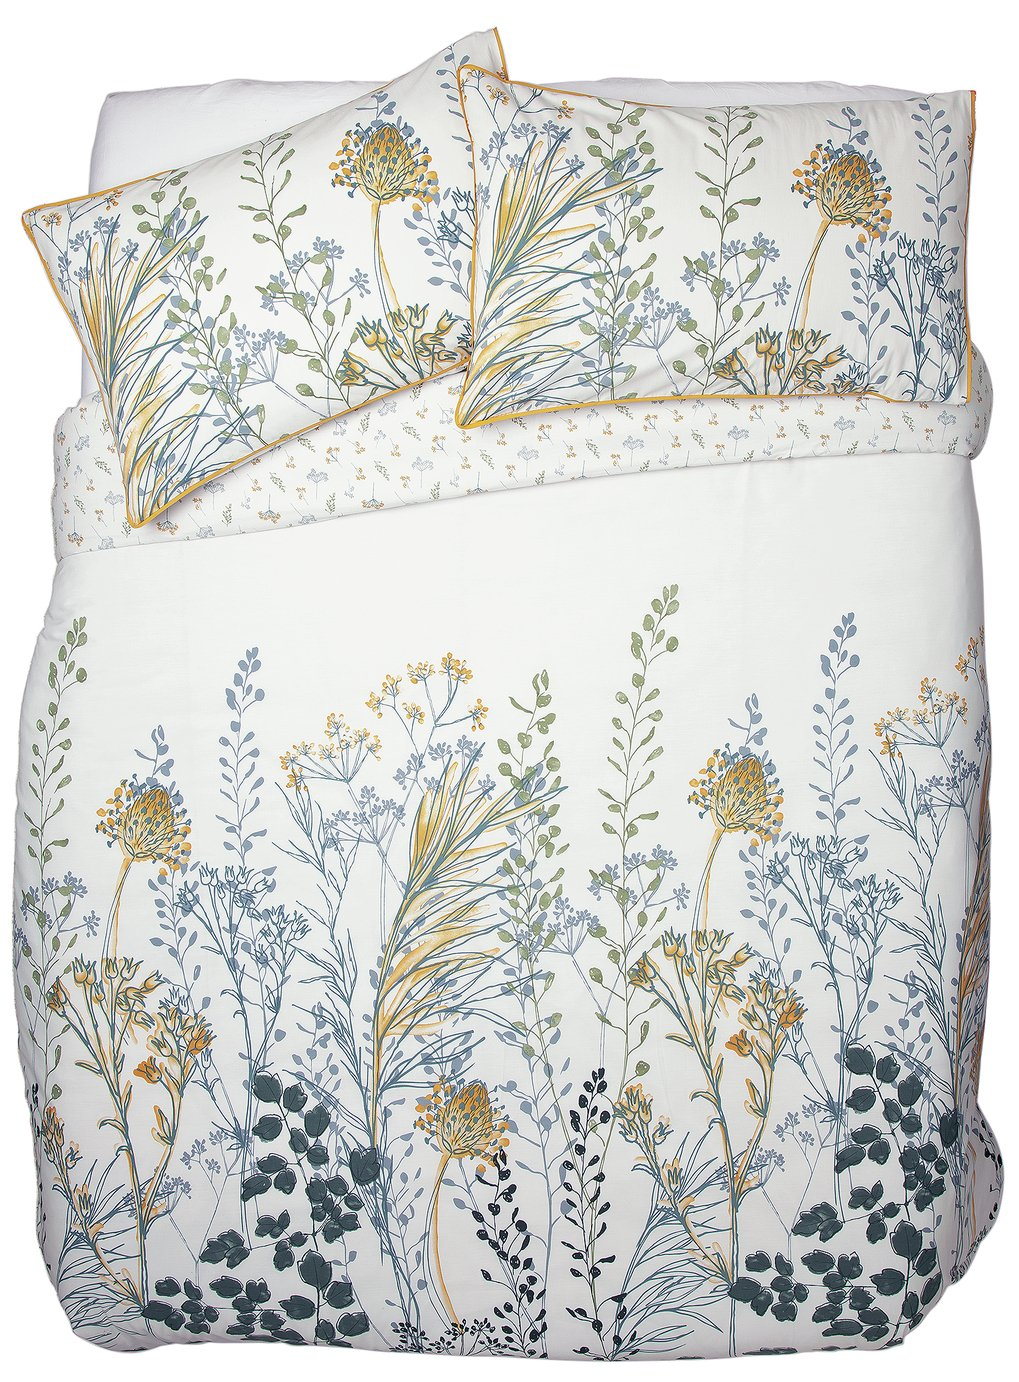 Argos Home Floral Crop Printed Bedding Set - Kingsize